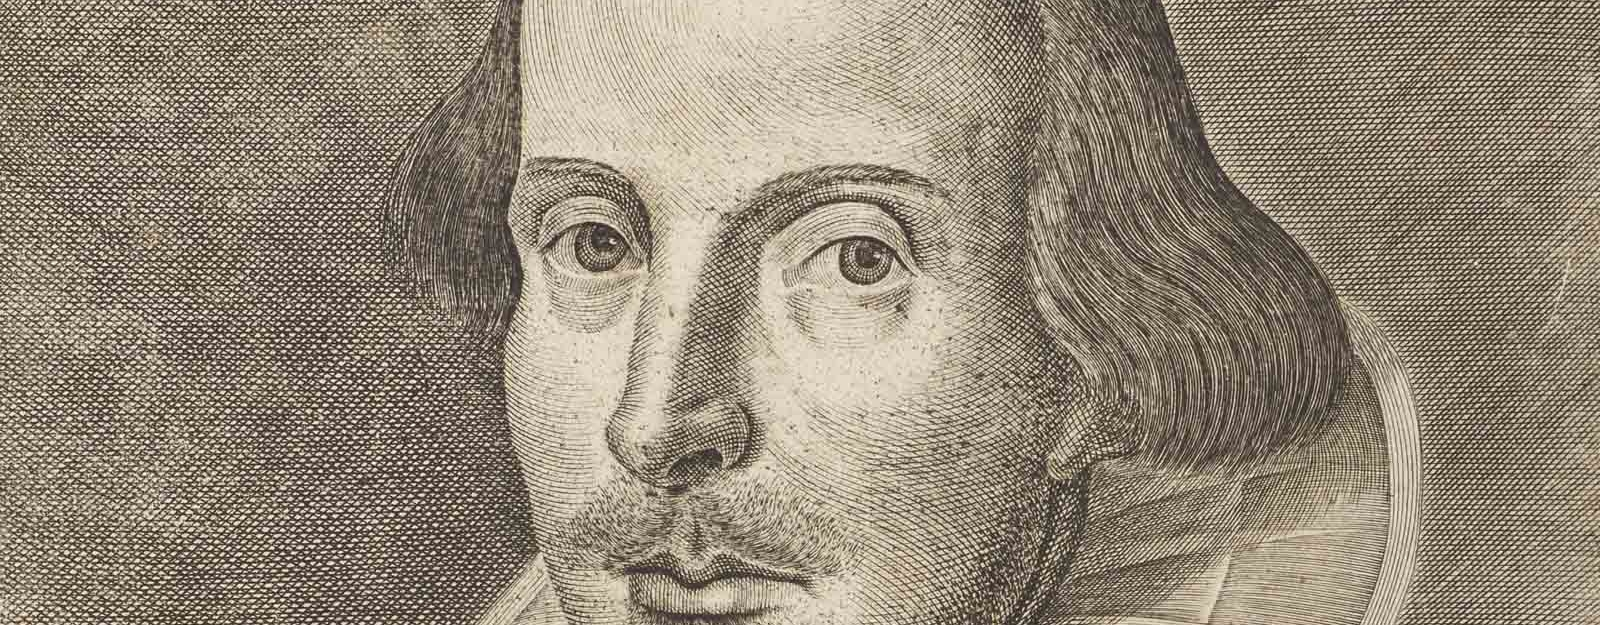 Engraving of Shakespeare's head